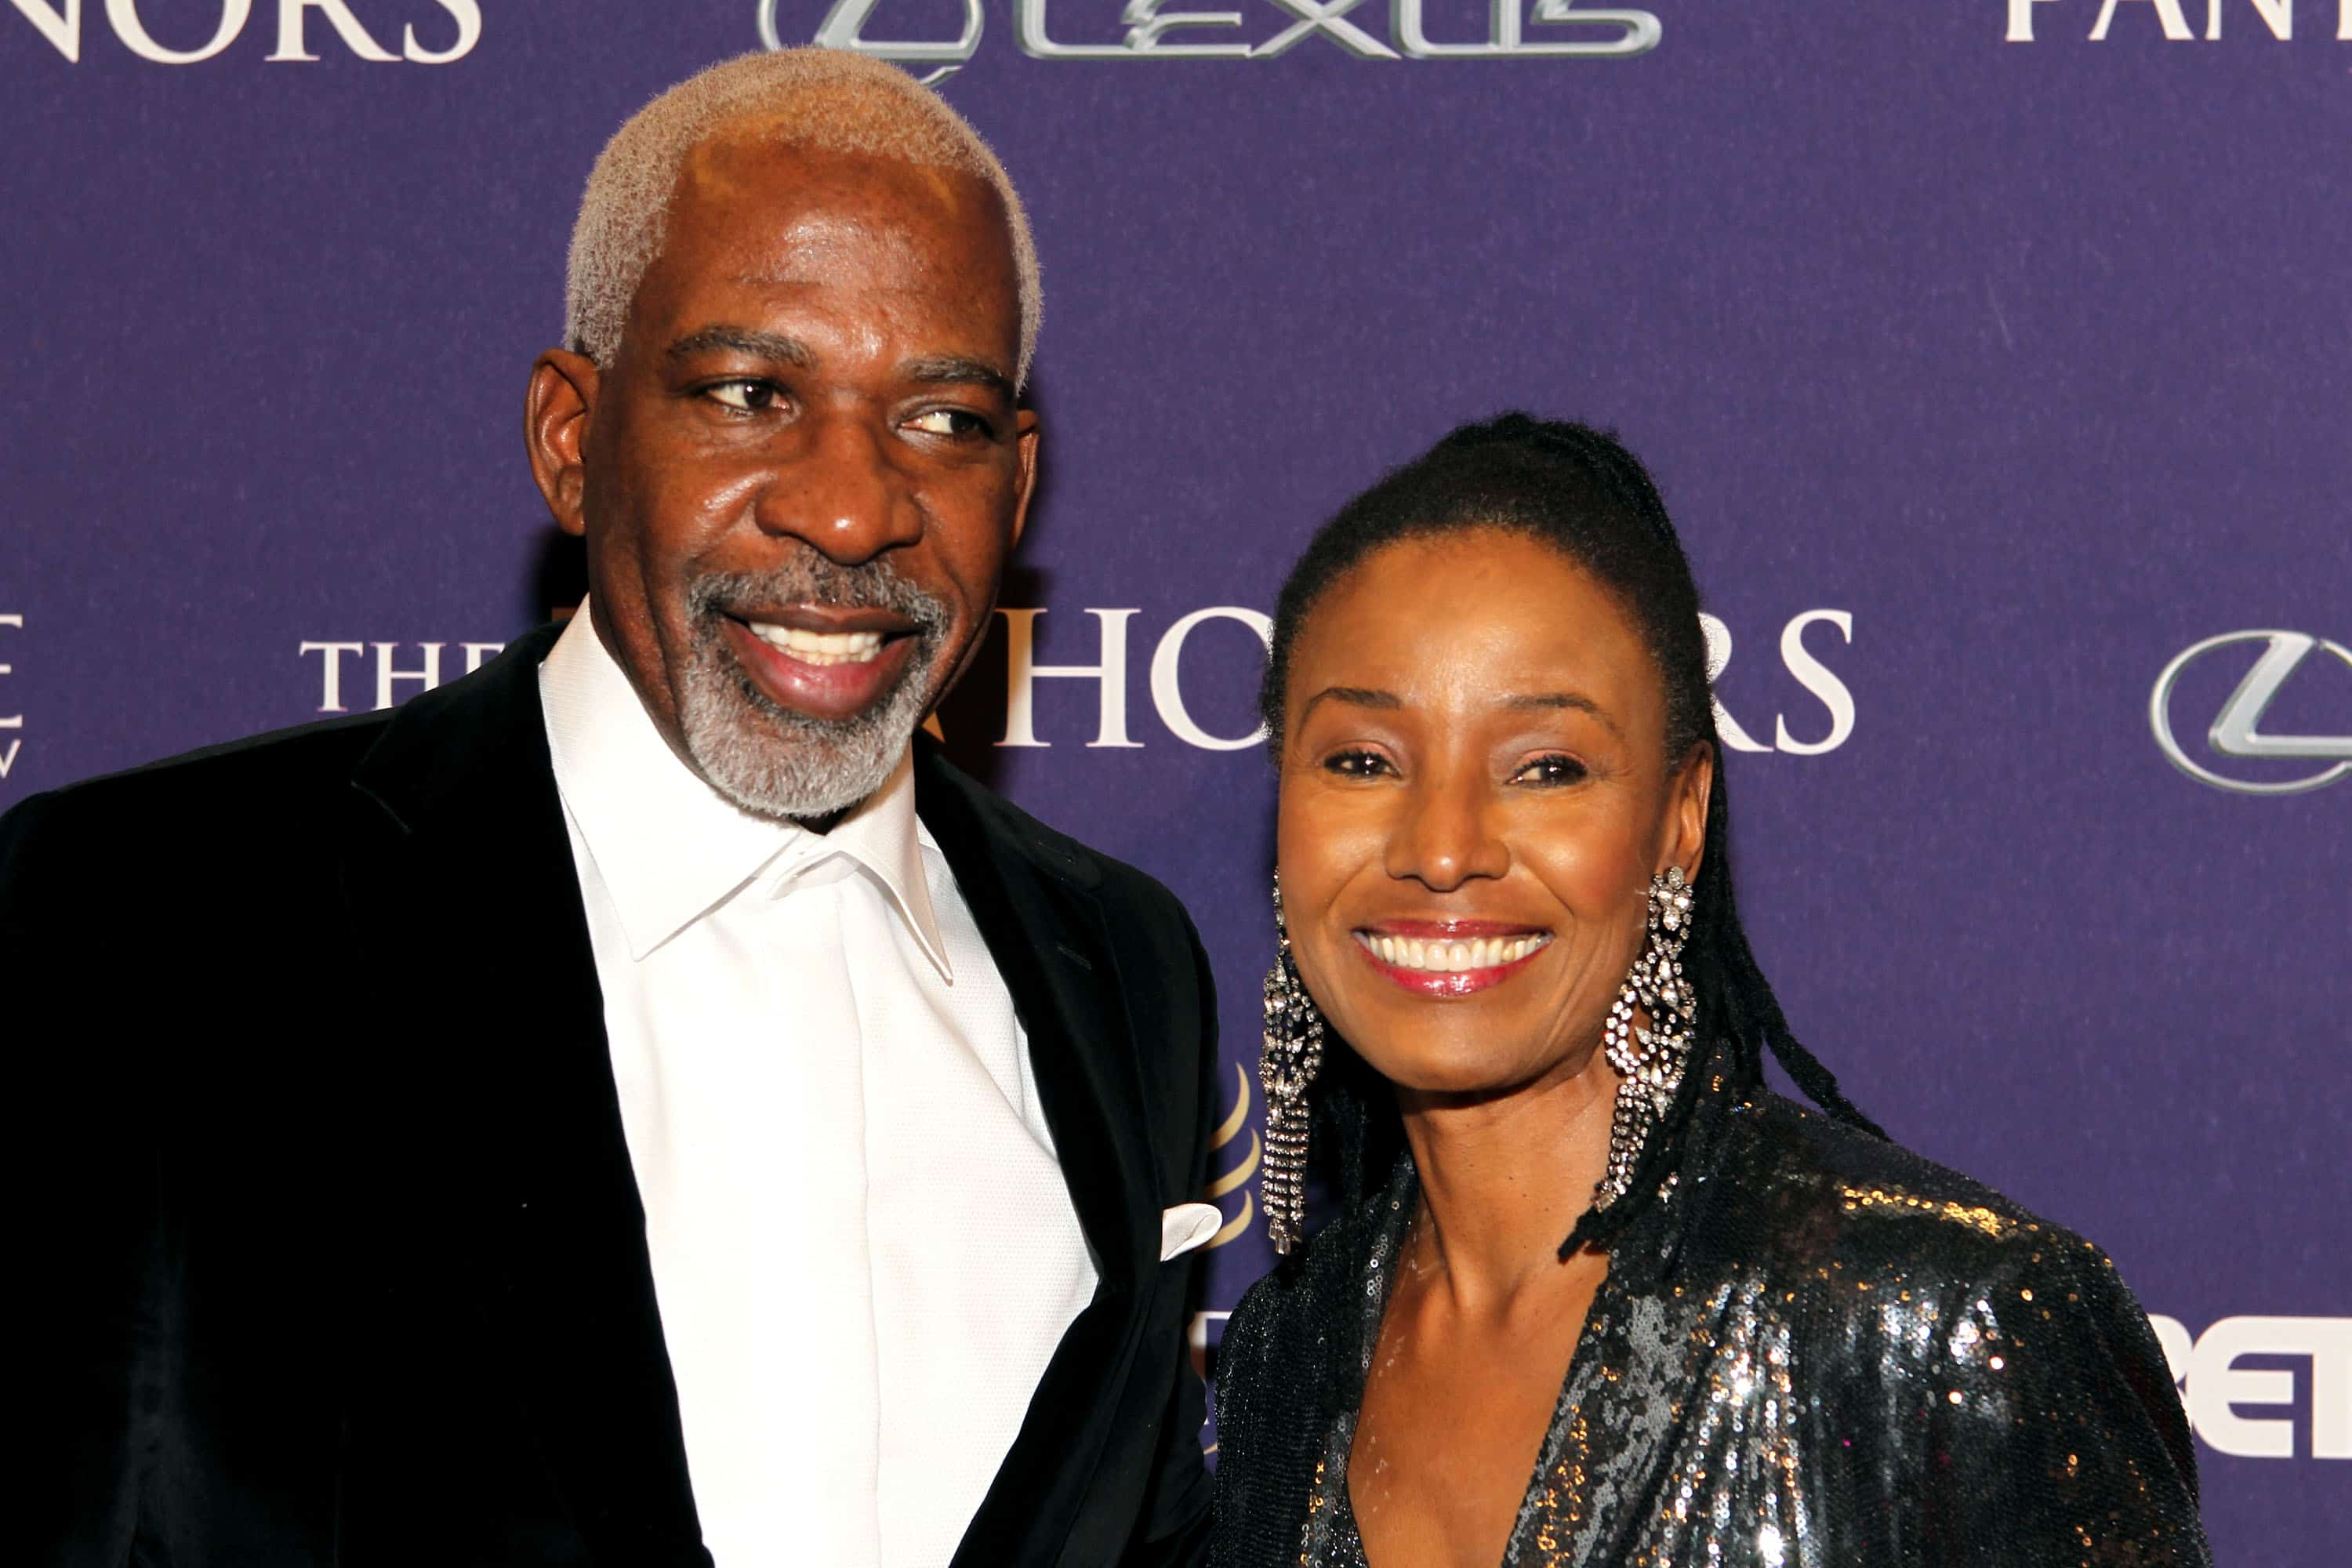 Dan Gasby announces that his wife, lifestyle guru B. Smith, has passed away at the age of 70 following her battle with Alzheimer's disease.